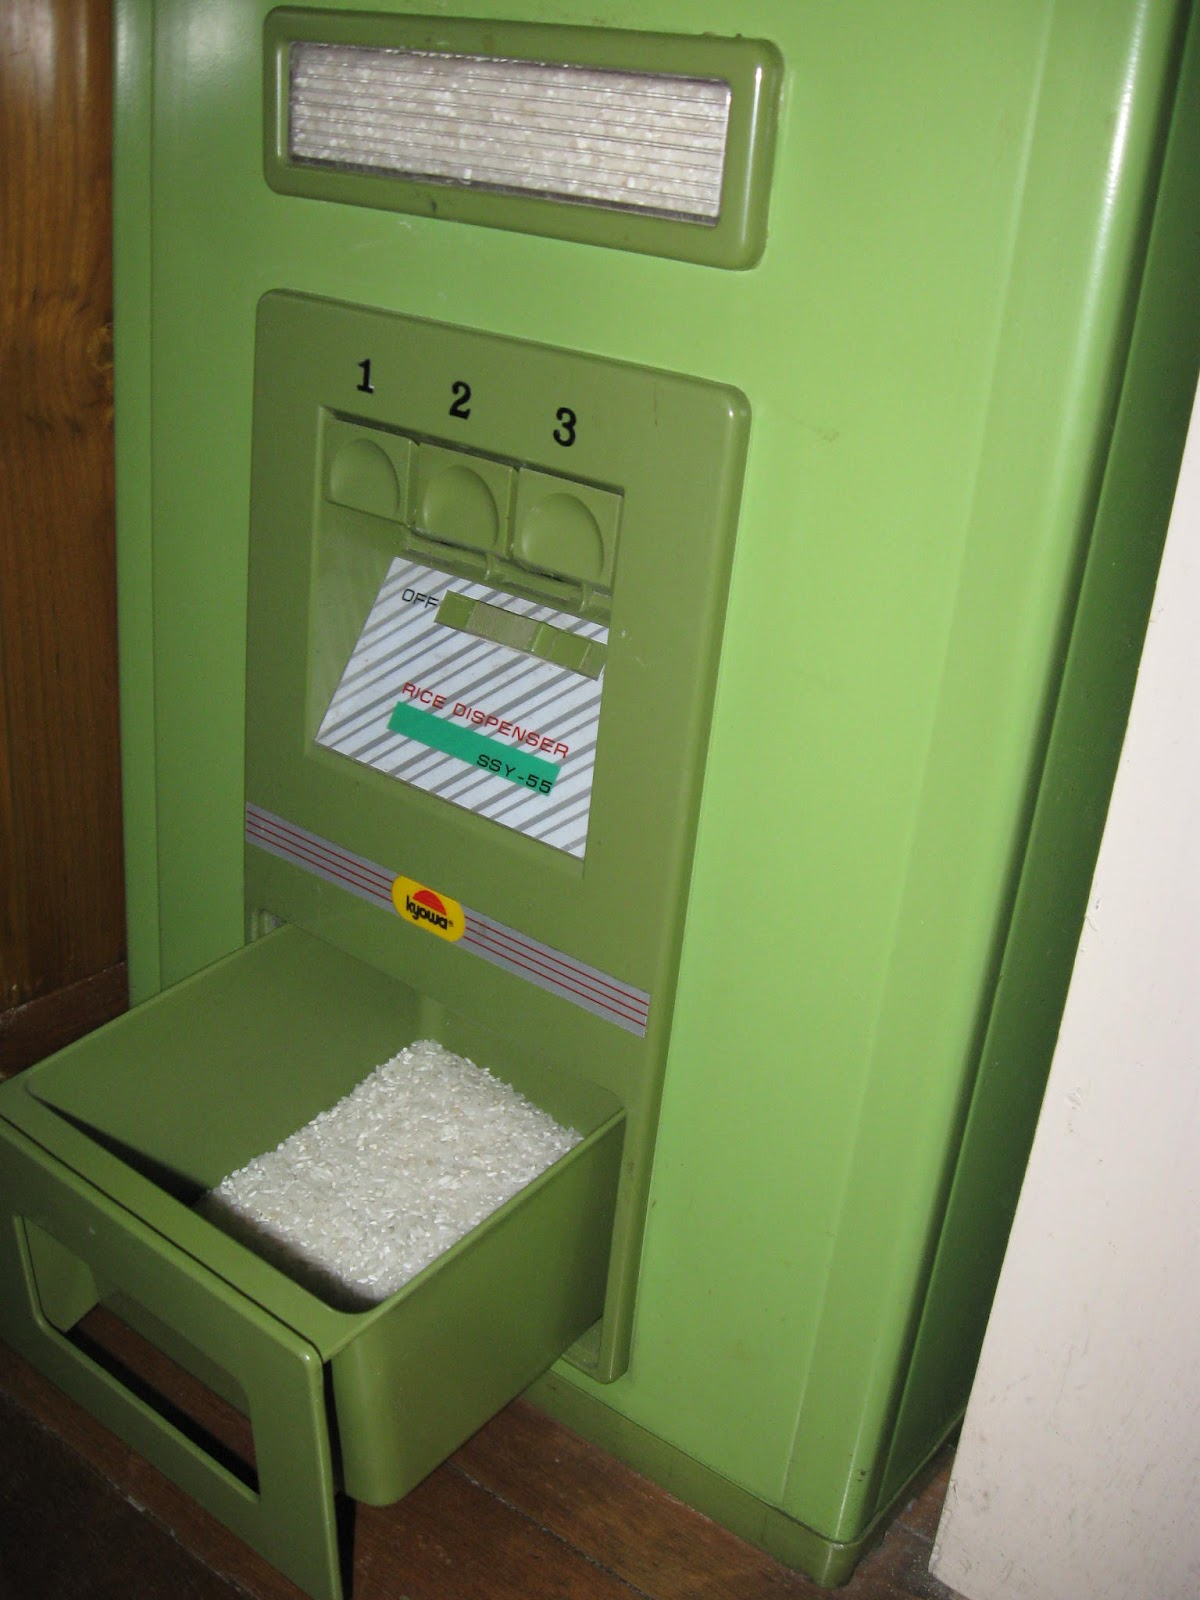 Well, As The Photo Shows, Rice Dispensers Are Equipped With Levers Marked  1, 2 And 3 To Indicate The Number Of Cups They Are Able To Spew Out Into  The ...